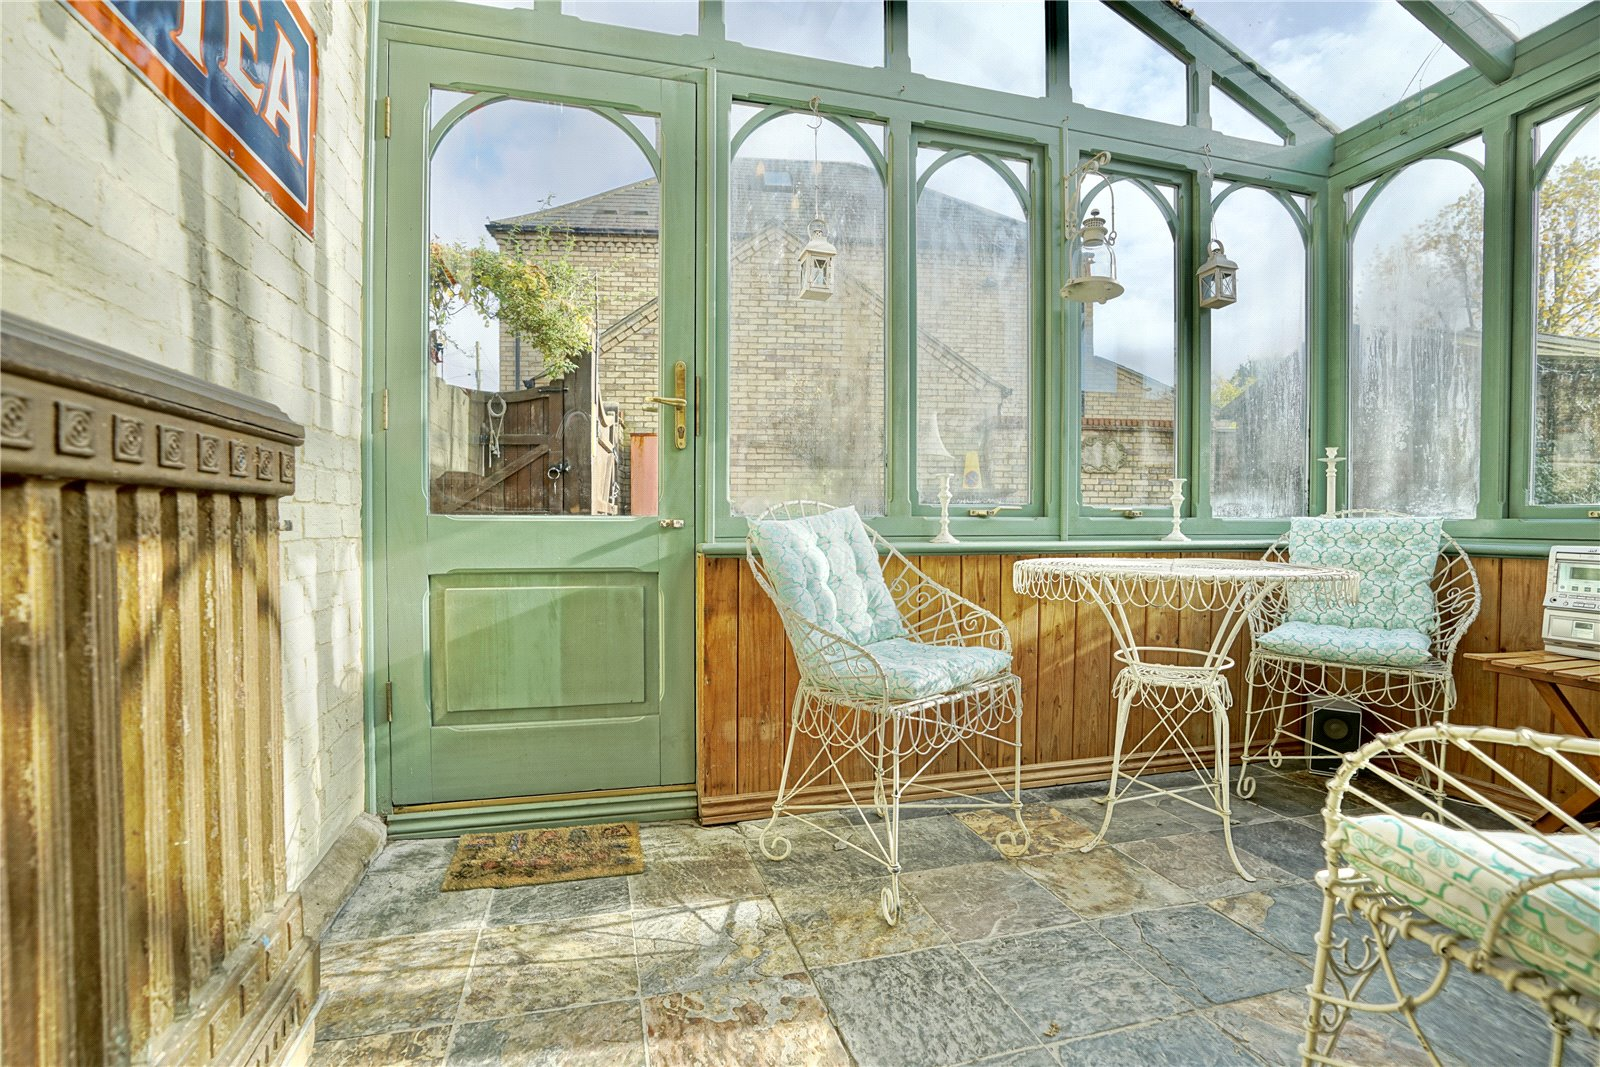 4 bed house for sale in Great Staughton 19